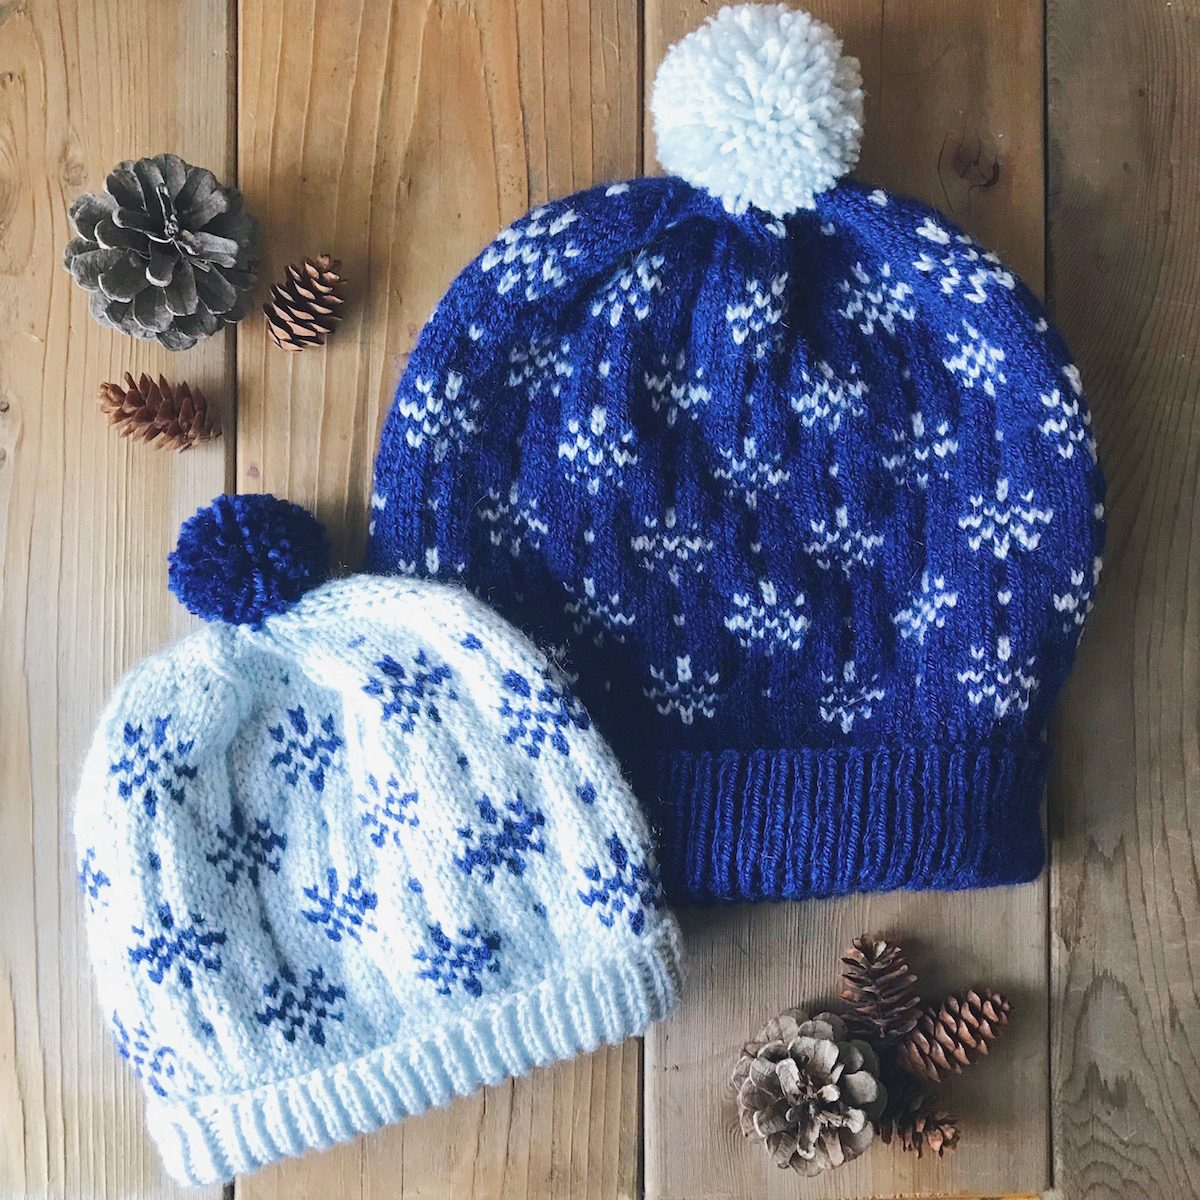 Snowflake Pattern Knitting Pdf Snowflake Beanie Knitting Pattern All Sizes Newborn Through